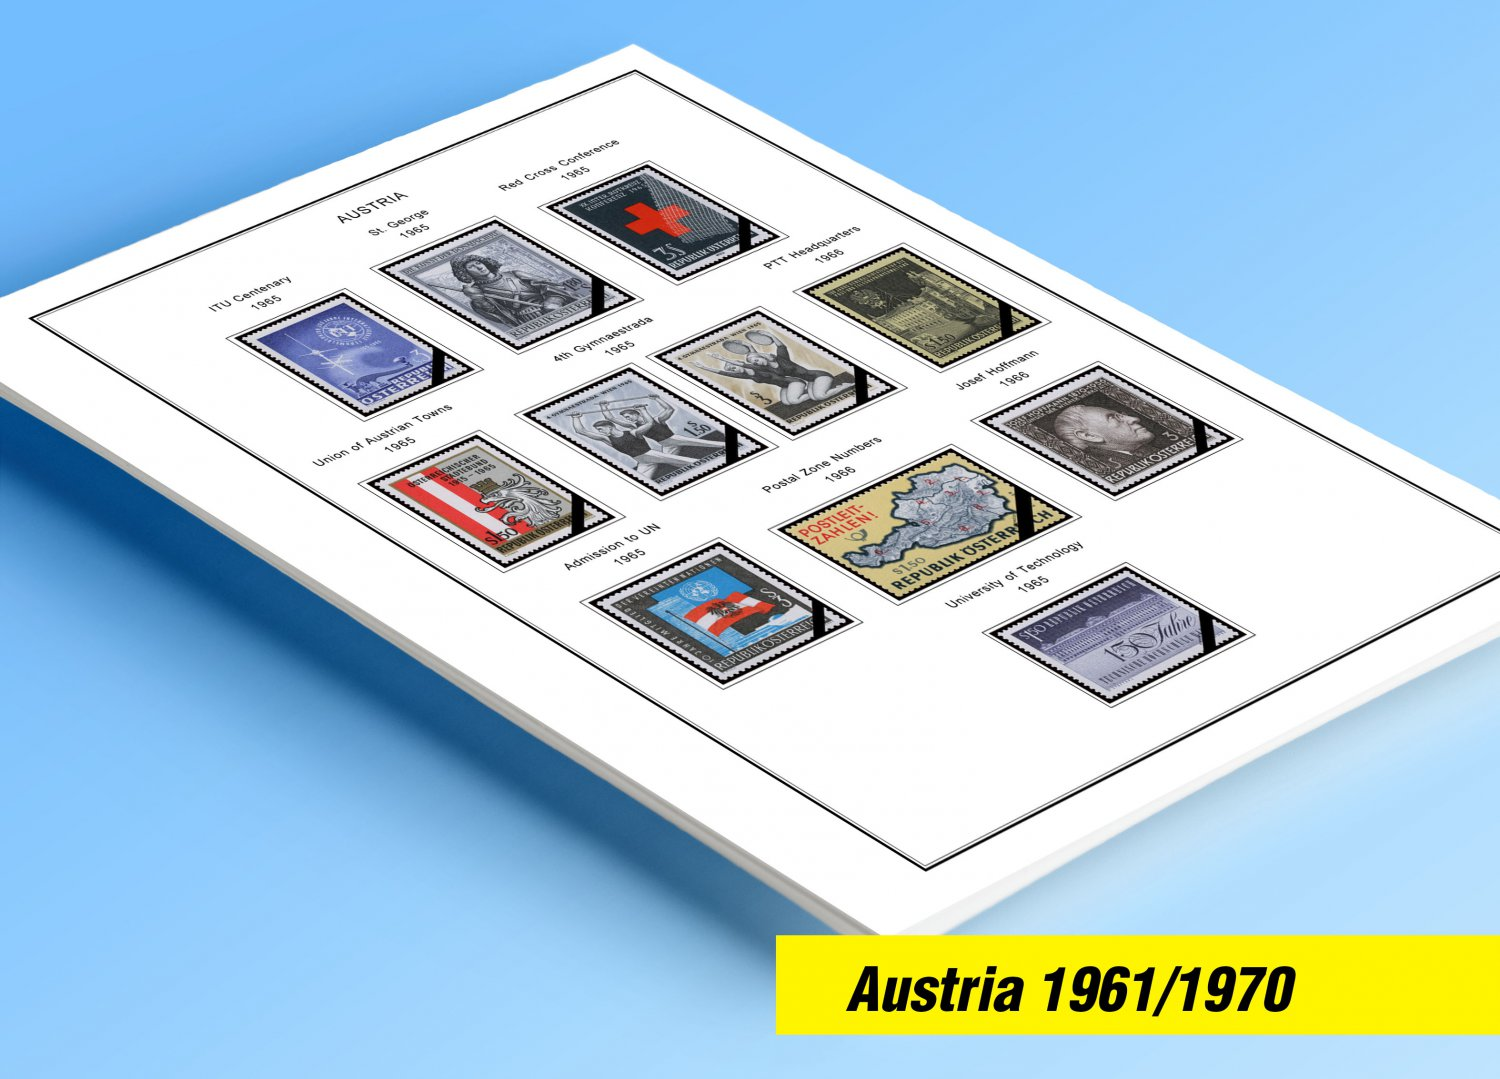 COLOR PRINTED AUSTRIA 1961-1970 STAMP ALBUM PAGES (25 illustrated pages)